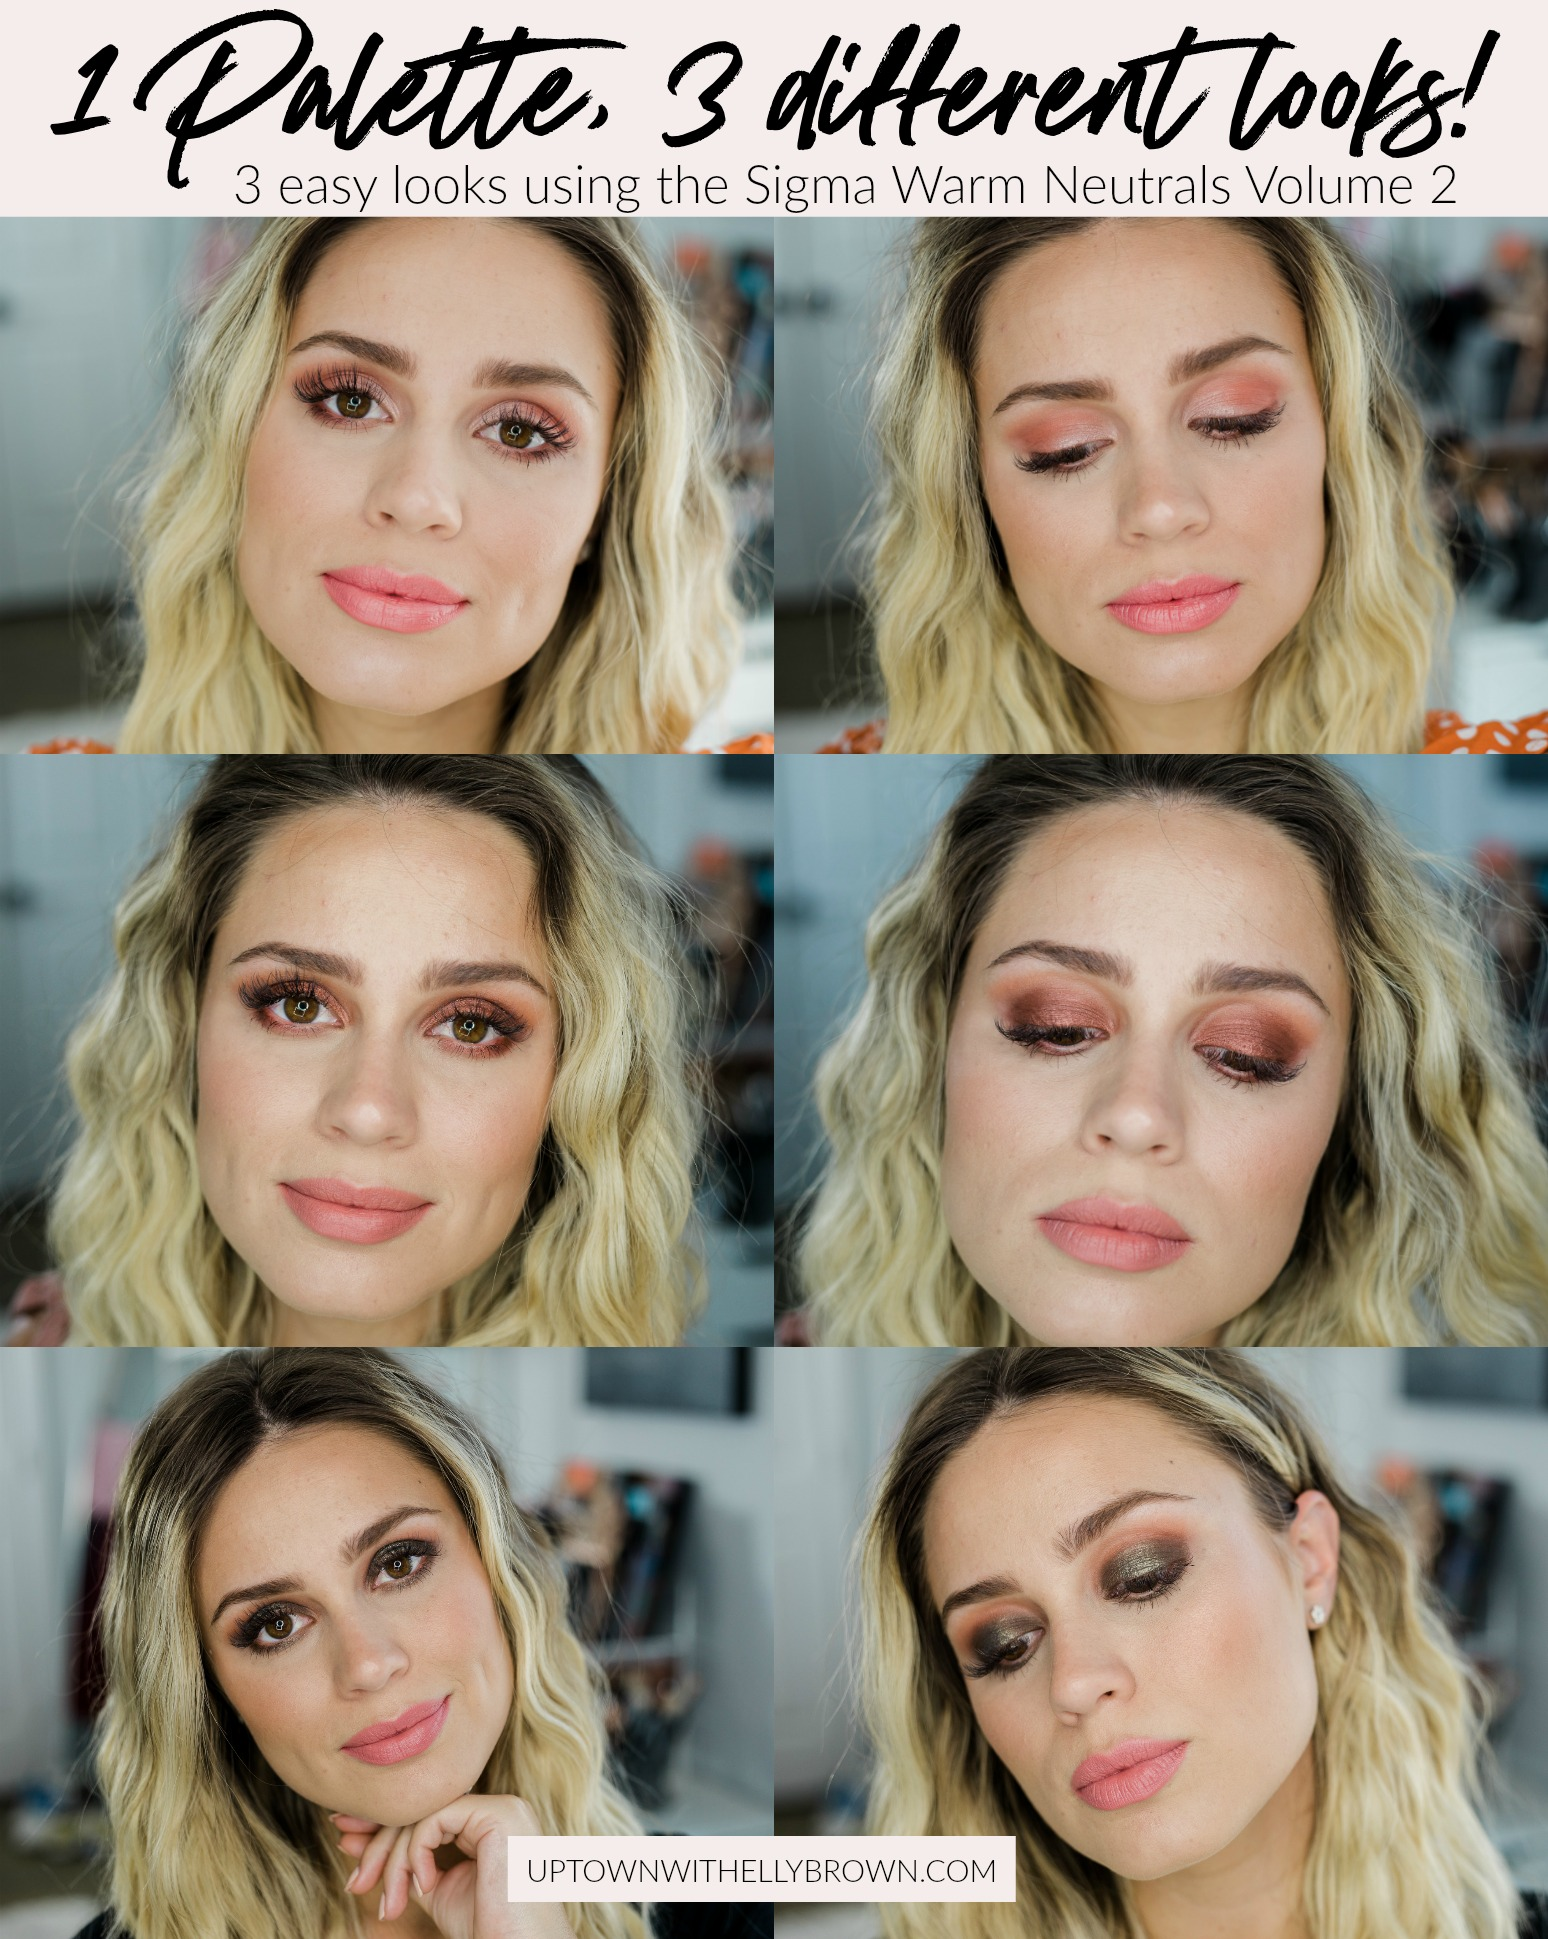 Houston Beauty blogger Uptown with Elly Brown shares 3 EASY ways to use the Sigma Warm Neutrals Volume 2 Palette to get the most for your money!